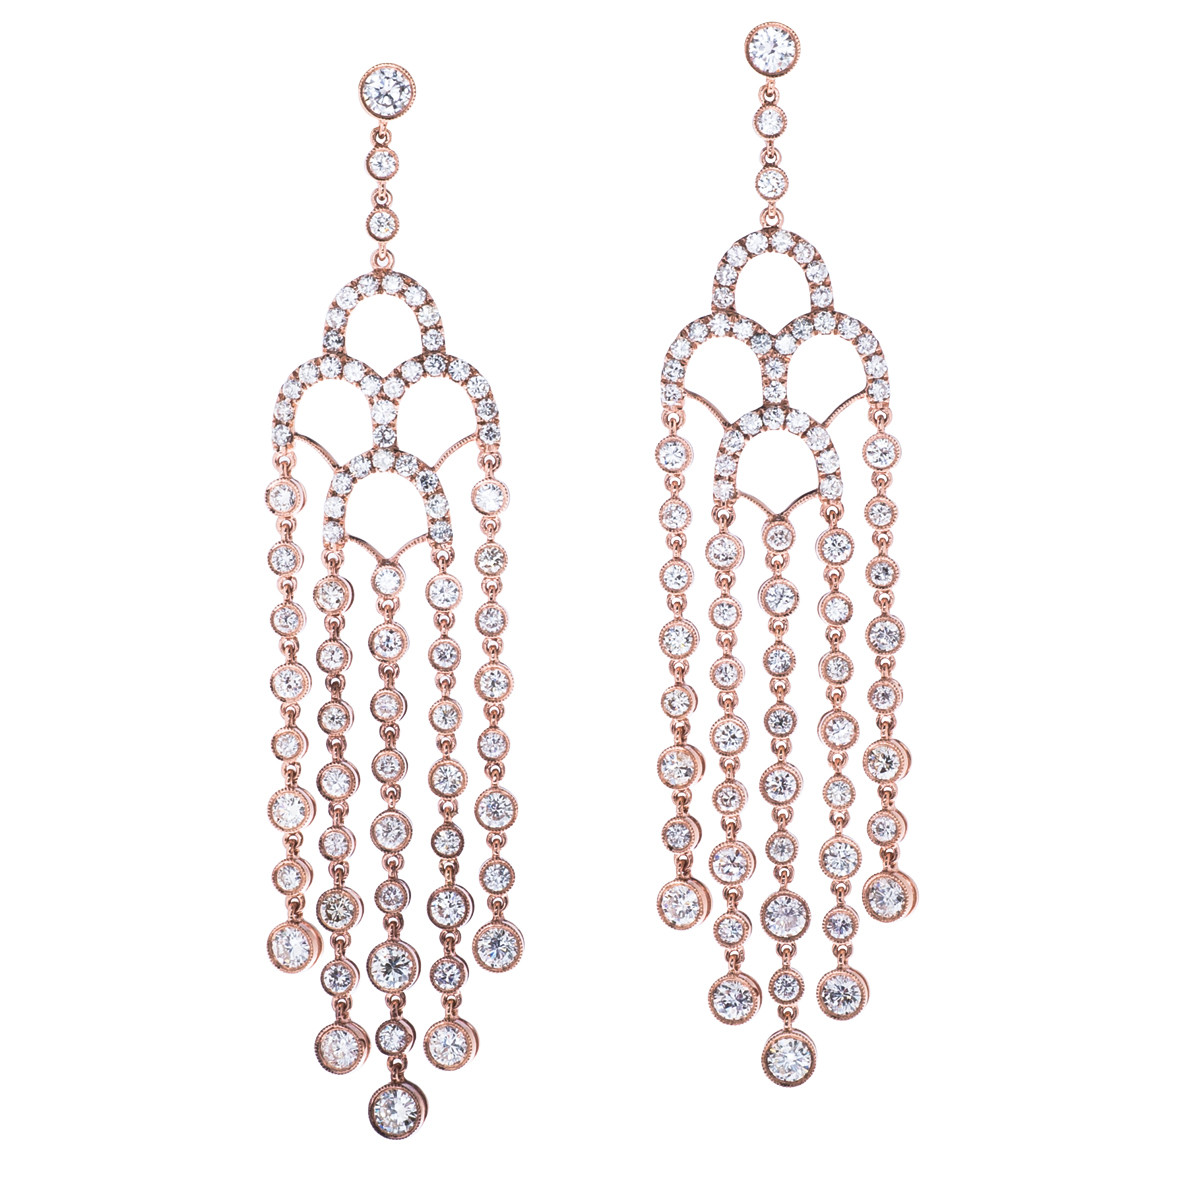 9.09 CTW Diamond Chandelier Earrings